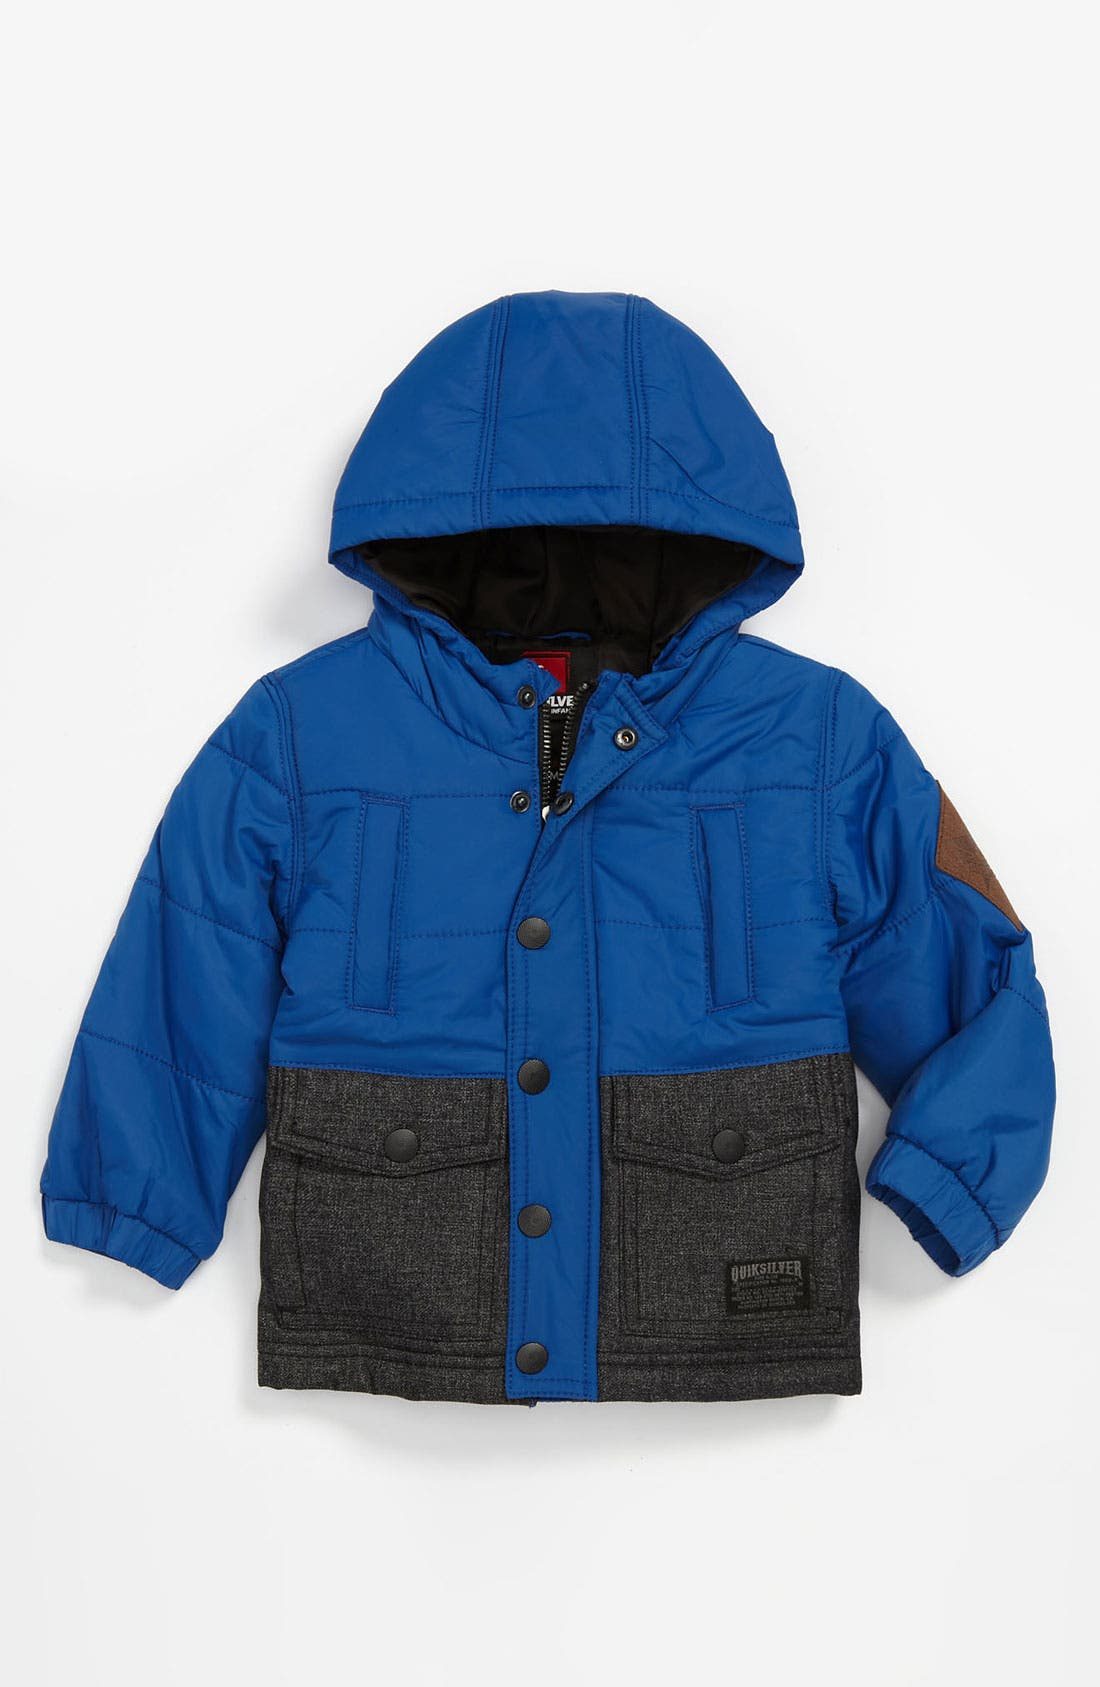 Alternate Image 1 Selected - Quiksilver 'Side Swipe' Jacket (Infant)